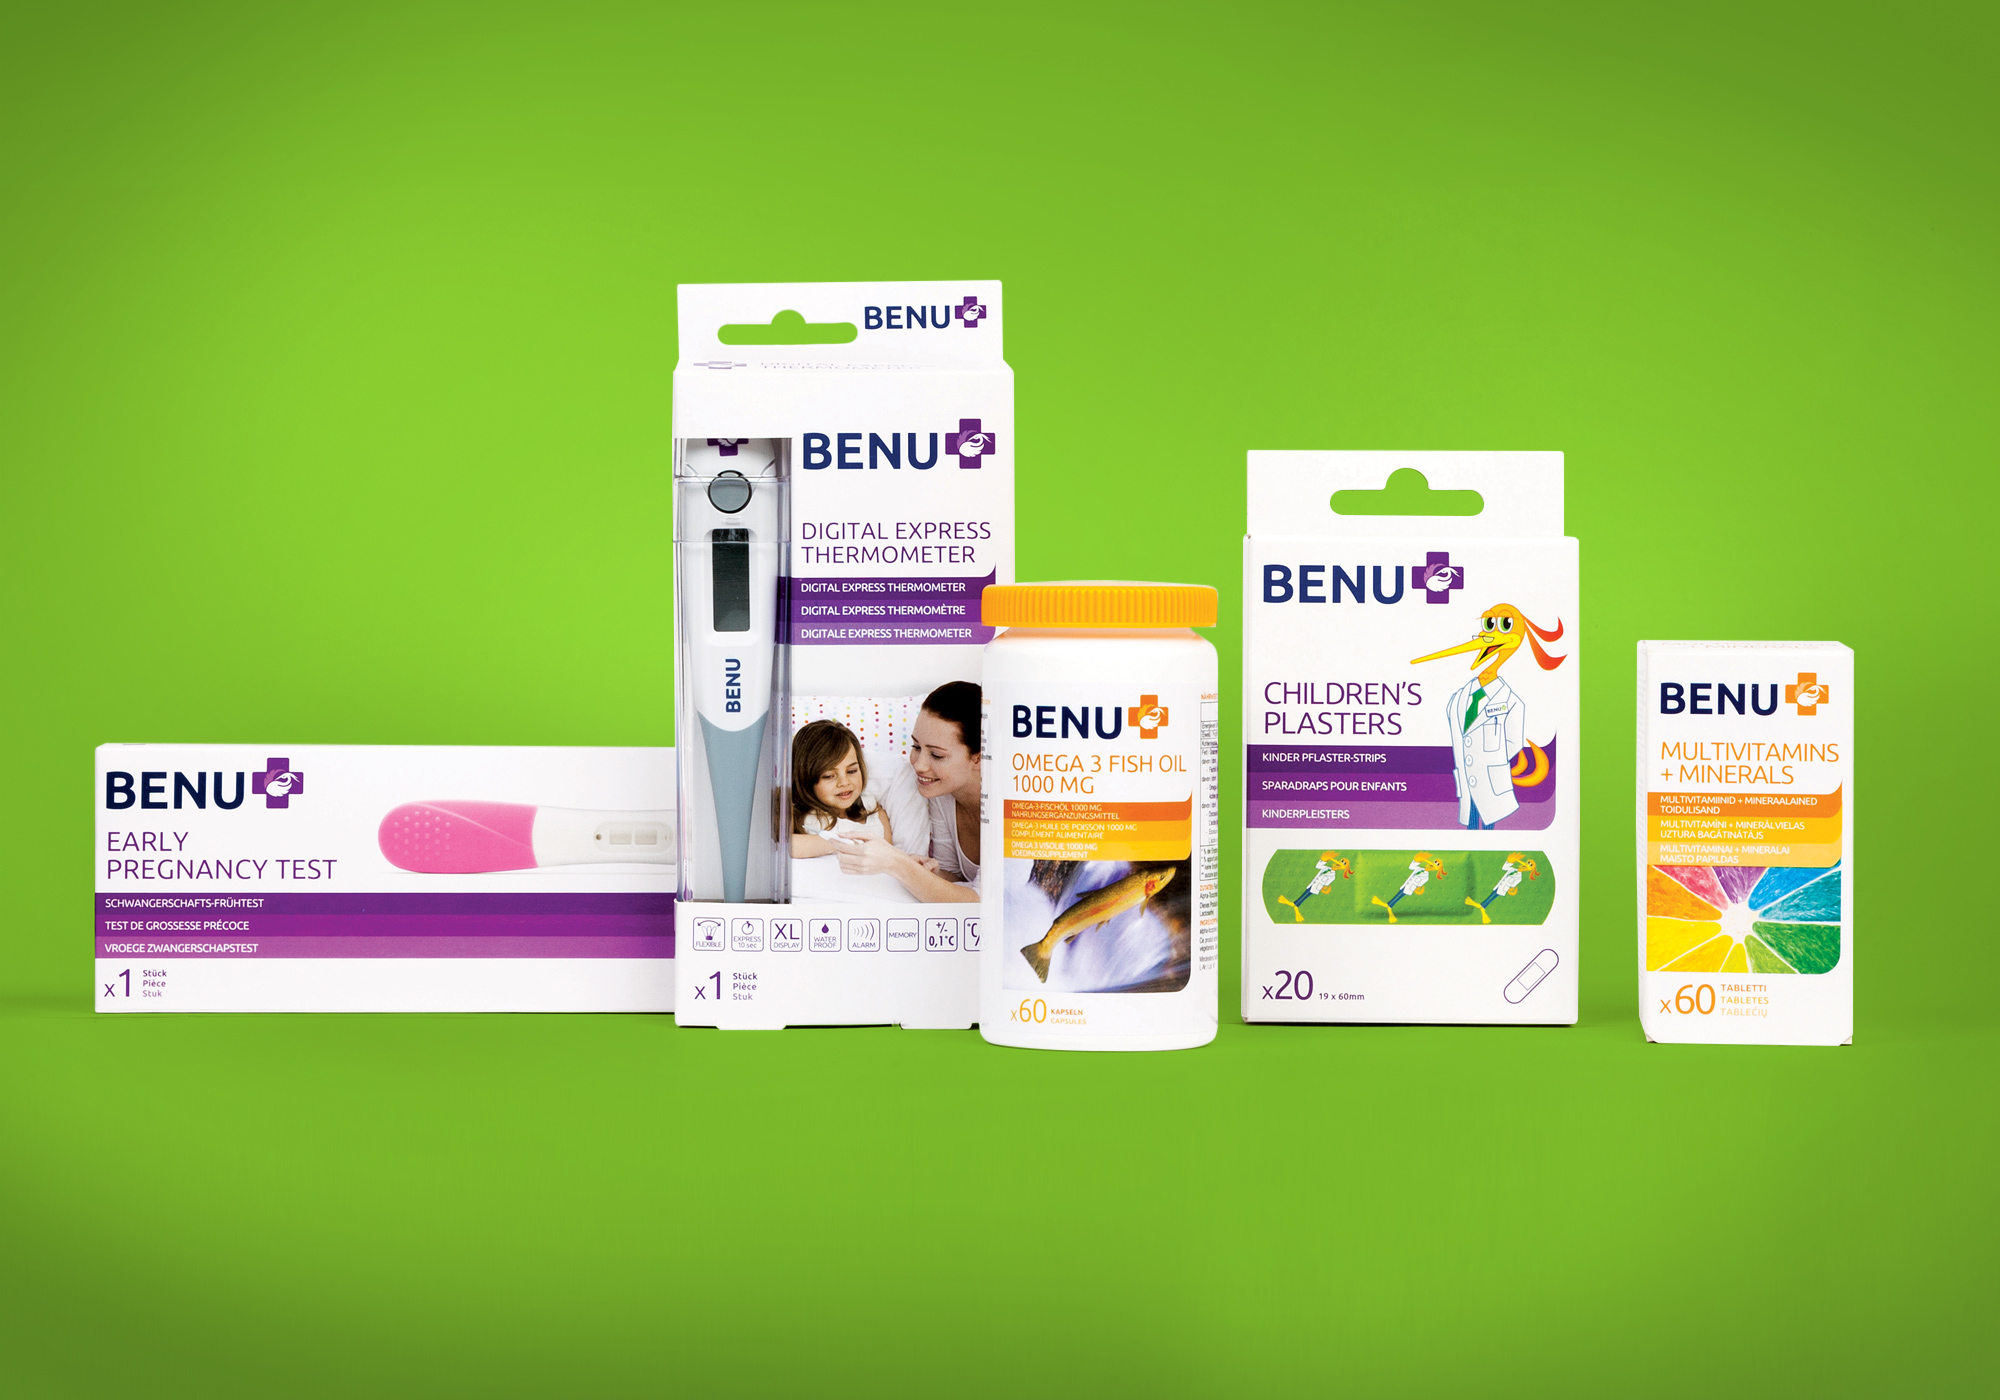 BENU Pharmacy brand packaging